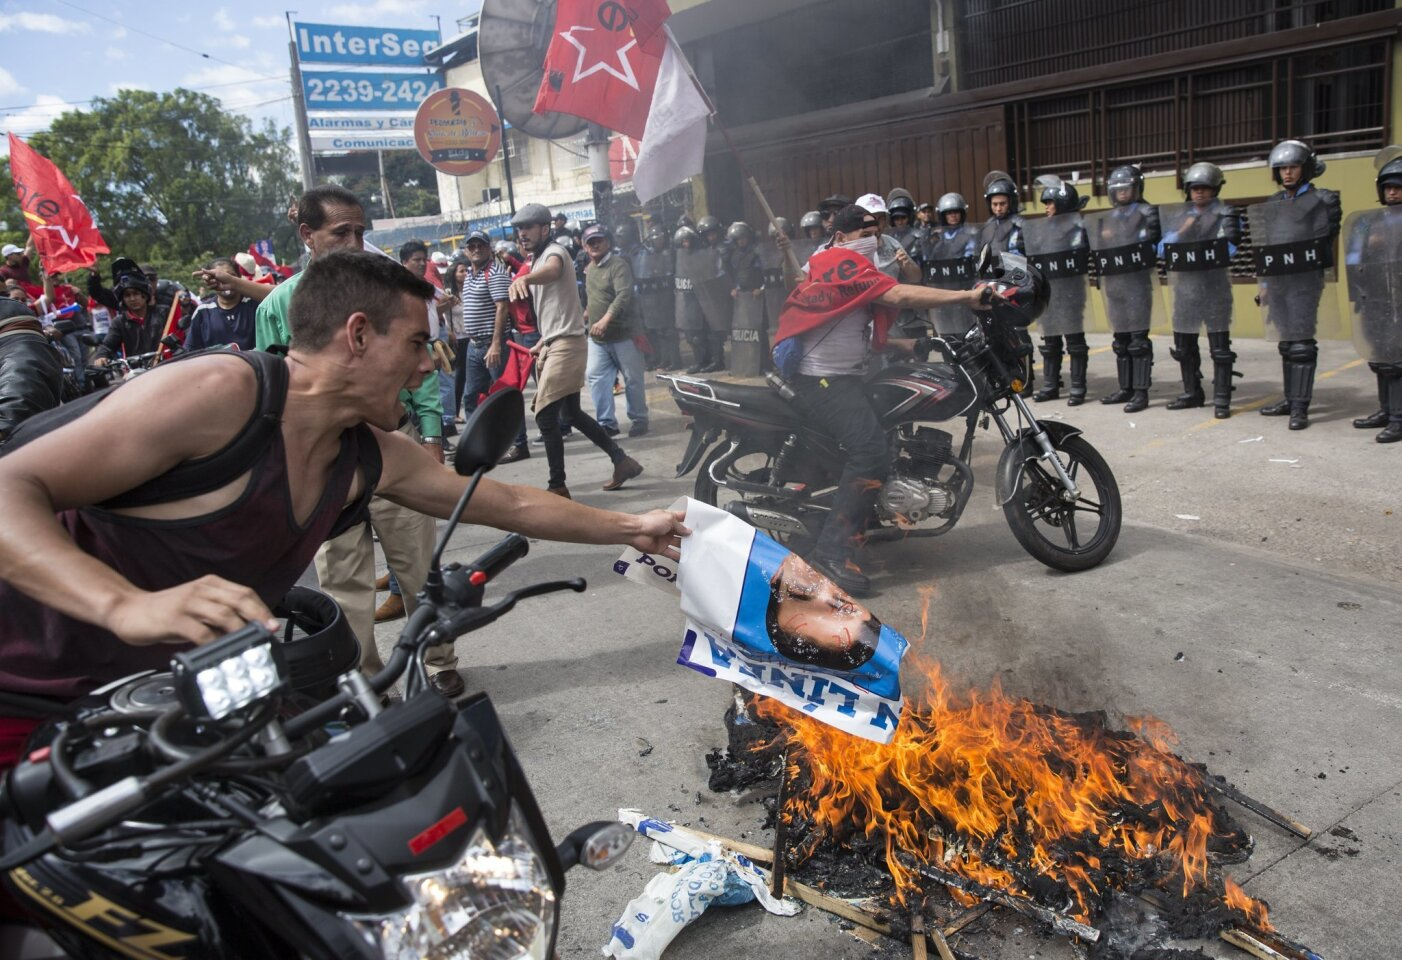 A supporter of Libre Alliance presidential candidate Salvador Nasralla adds to a bonfire of burning banners promoting Honduran President Juan Orlando Hernandez during a protest claiming electoral fraud outside the Supreme Electoral Tribunal in Tegucigalpa, Honduras.